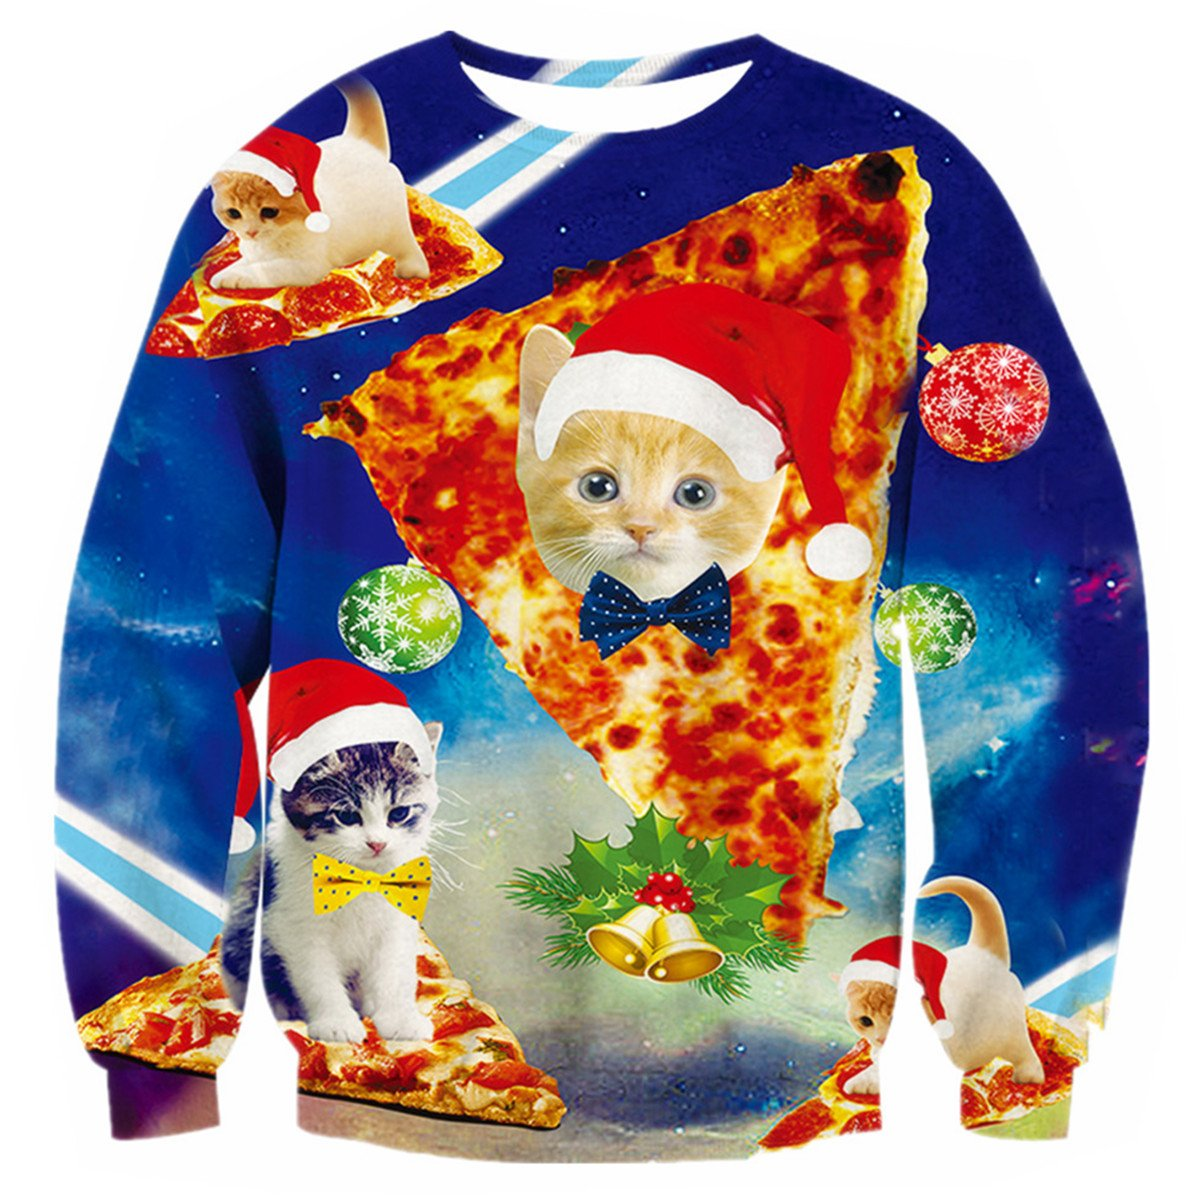 dcc2037594385 Amazon.com  Uideazone Unisex Funny Ugly Christmas Sweater 3D Printed Crew  Neck Pullover Sweatshirts for Xmas Party  Clothing